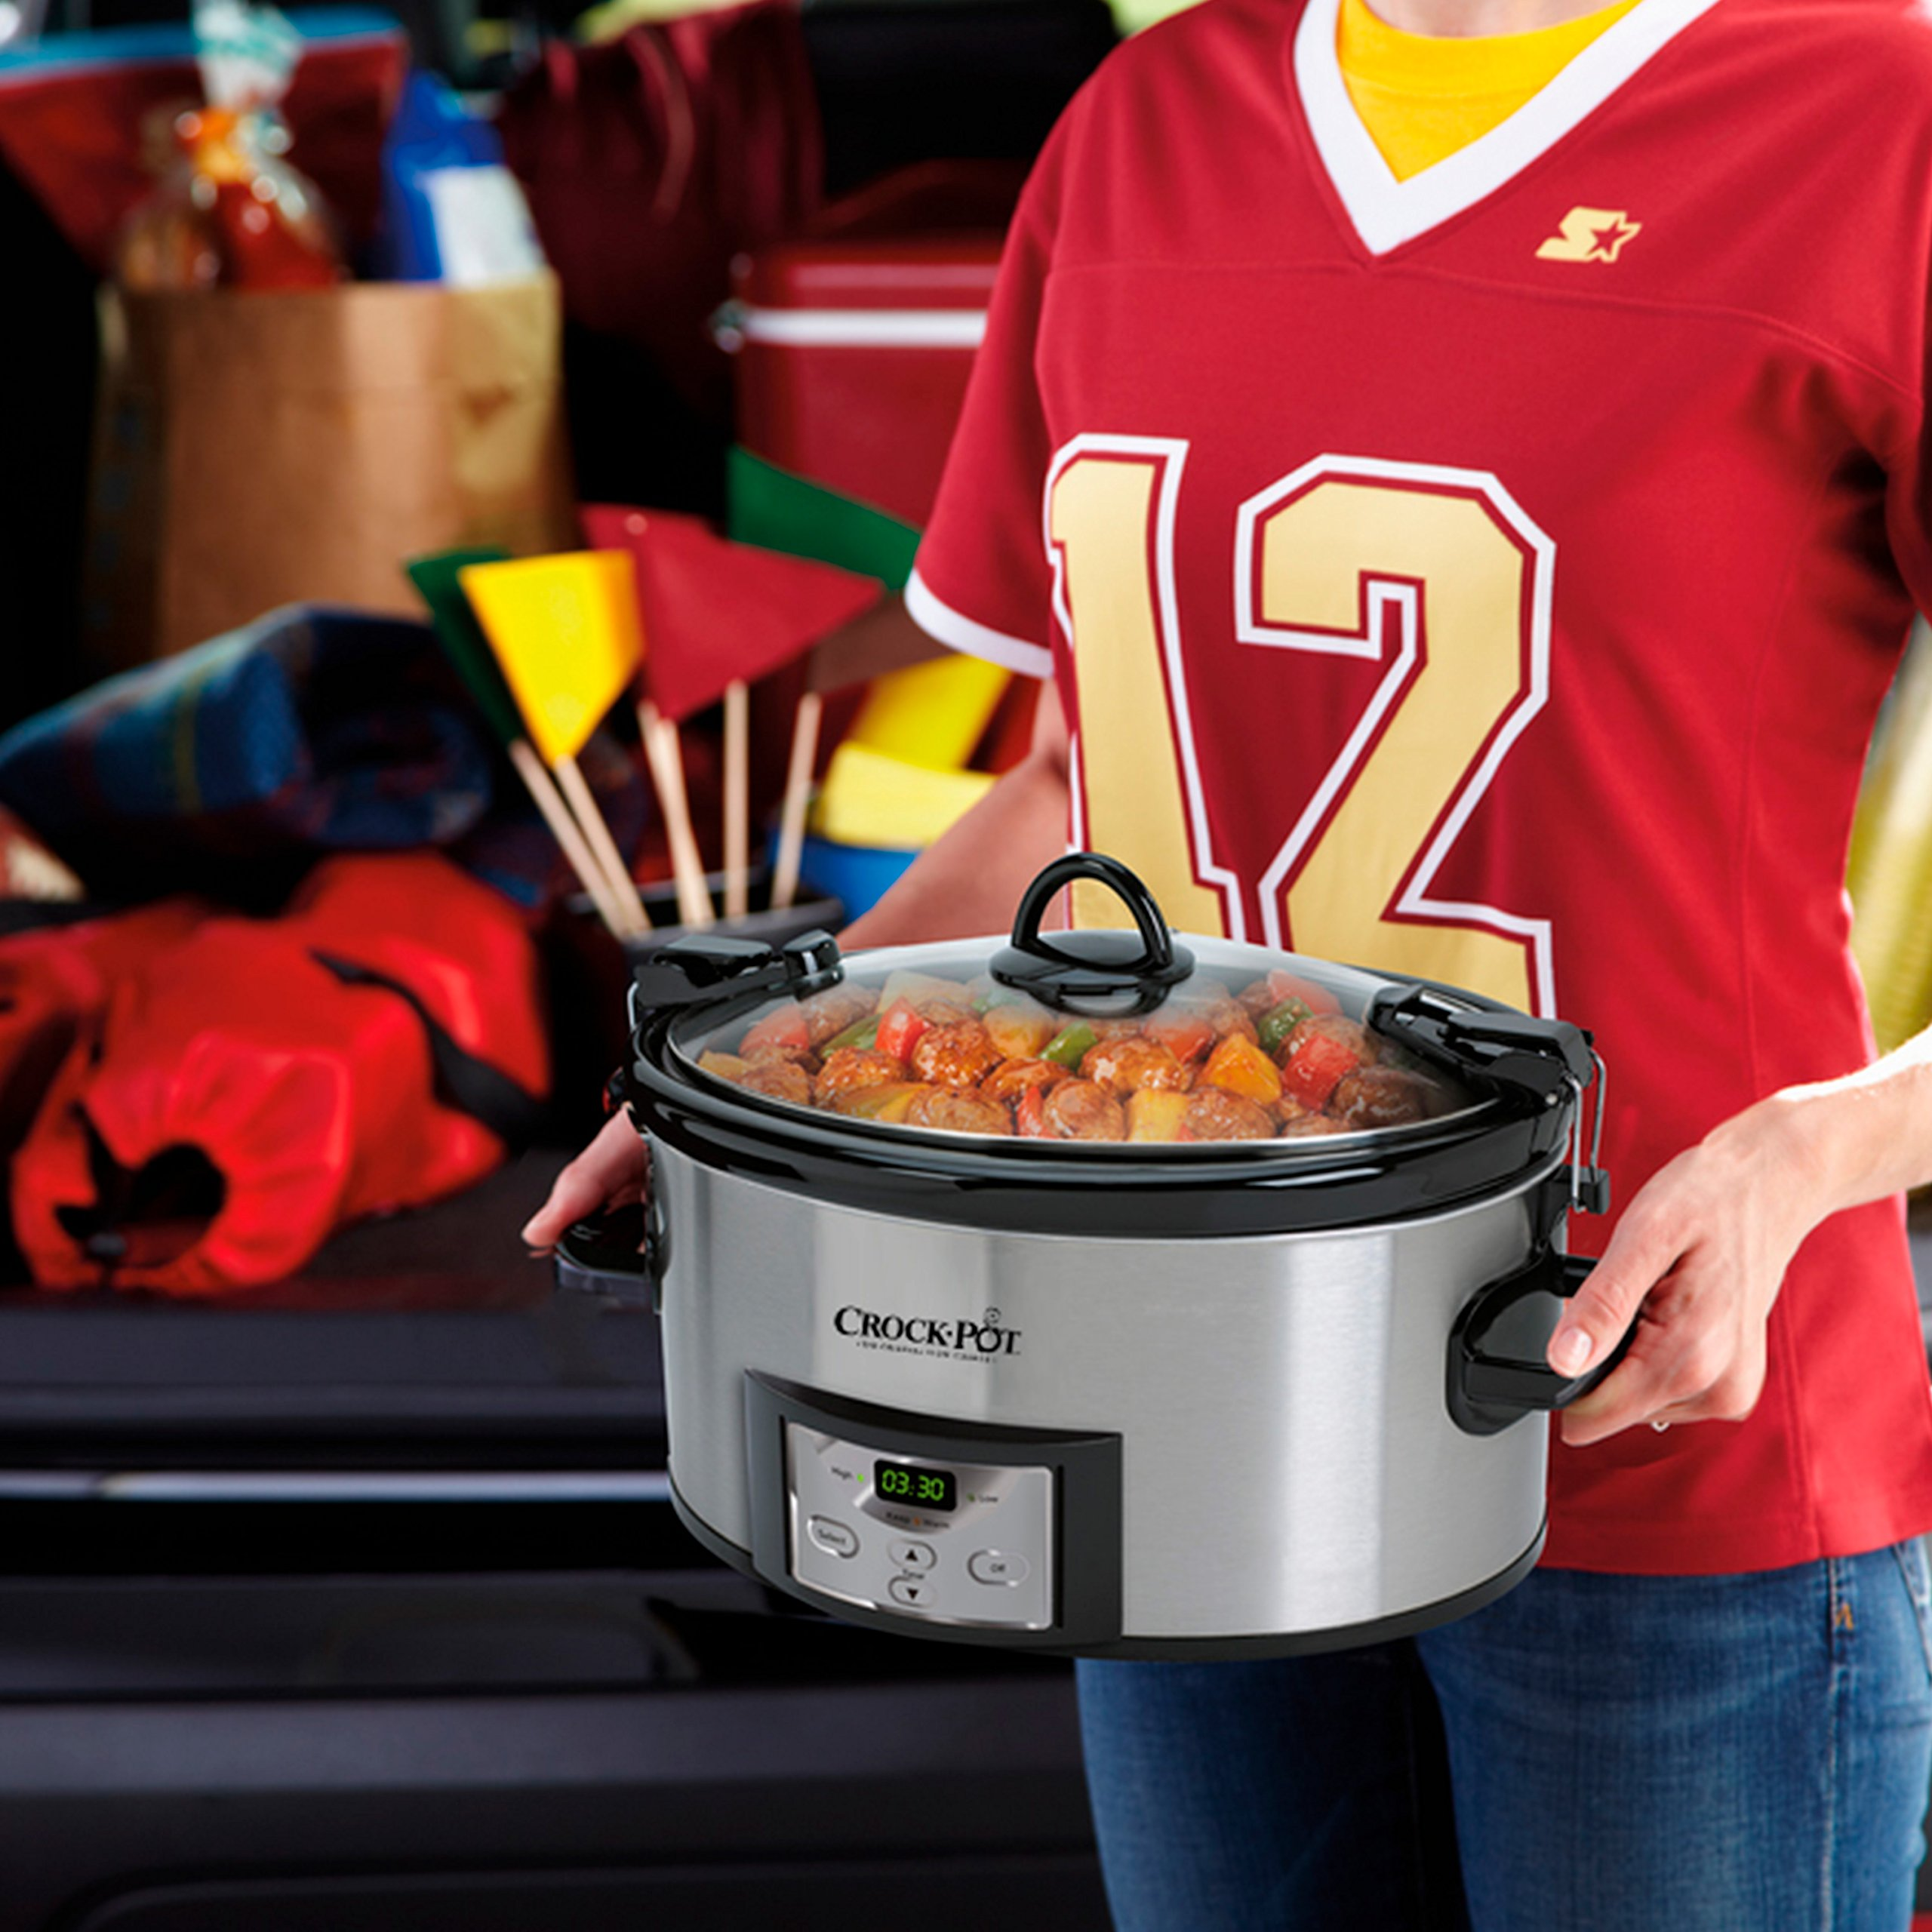 Crock-Pot 6-Quart Programmable Cook & Carry Slow Cooker with Digital Timer, Stainless Steel, SCCPVL610-S by Crock-Pot (Image #4)